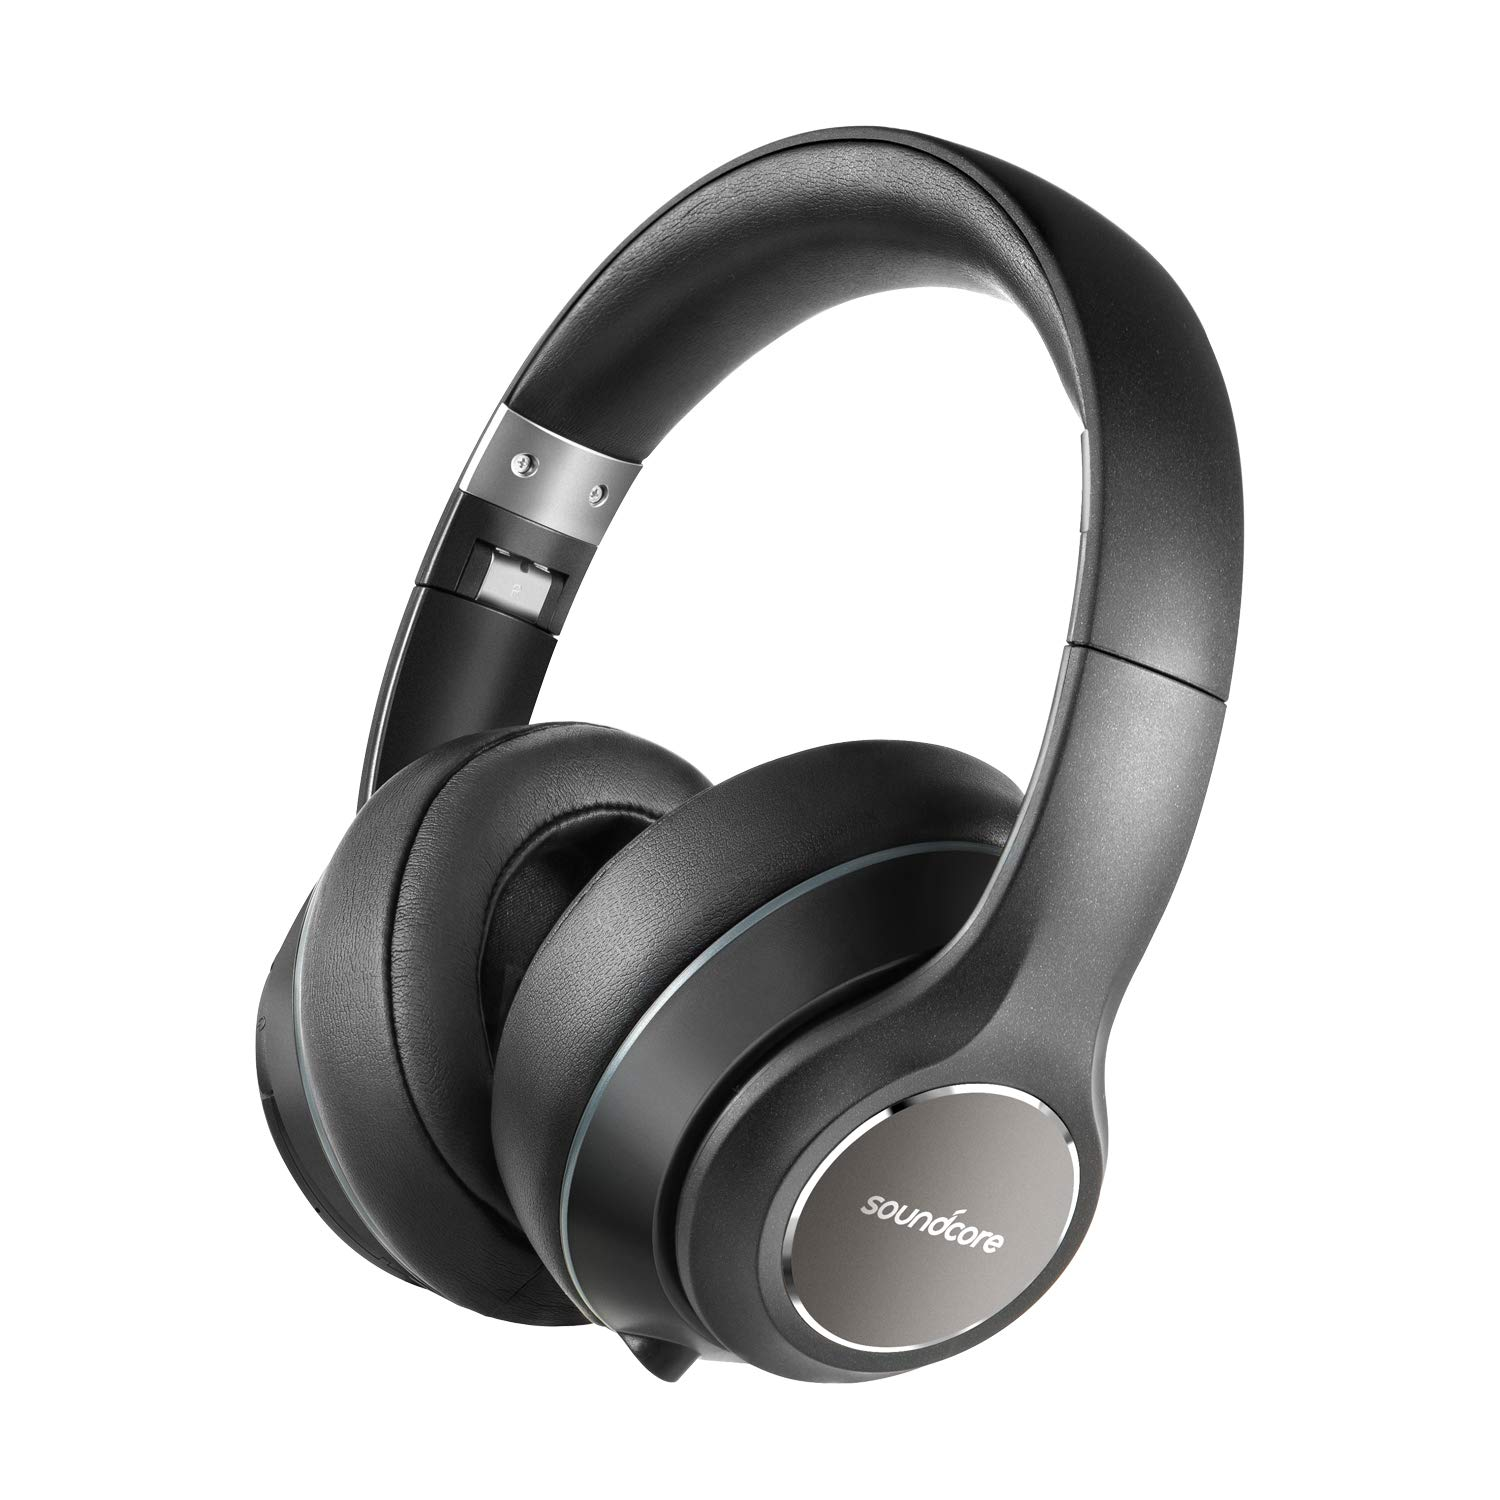 Over Ear Headphones, Soundcore Vortex Wireless Headset by Anker, 20H Playtime, Deep Bass, Noise Cancellation, Hi-Fi Stereo Earphones for PC/Phones/TV, Soft Memory-Foam Ear Cups, w/Mic and Wired Mode